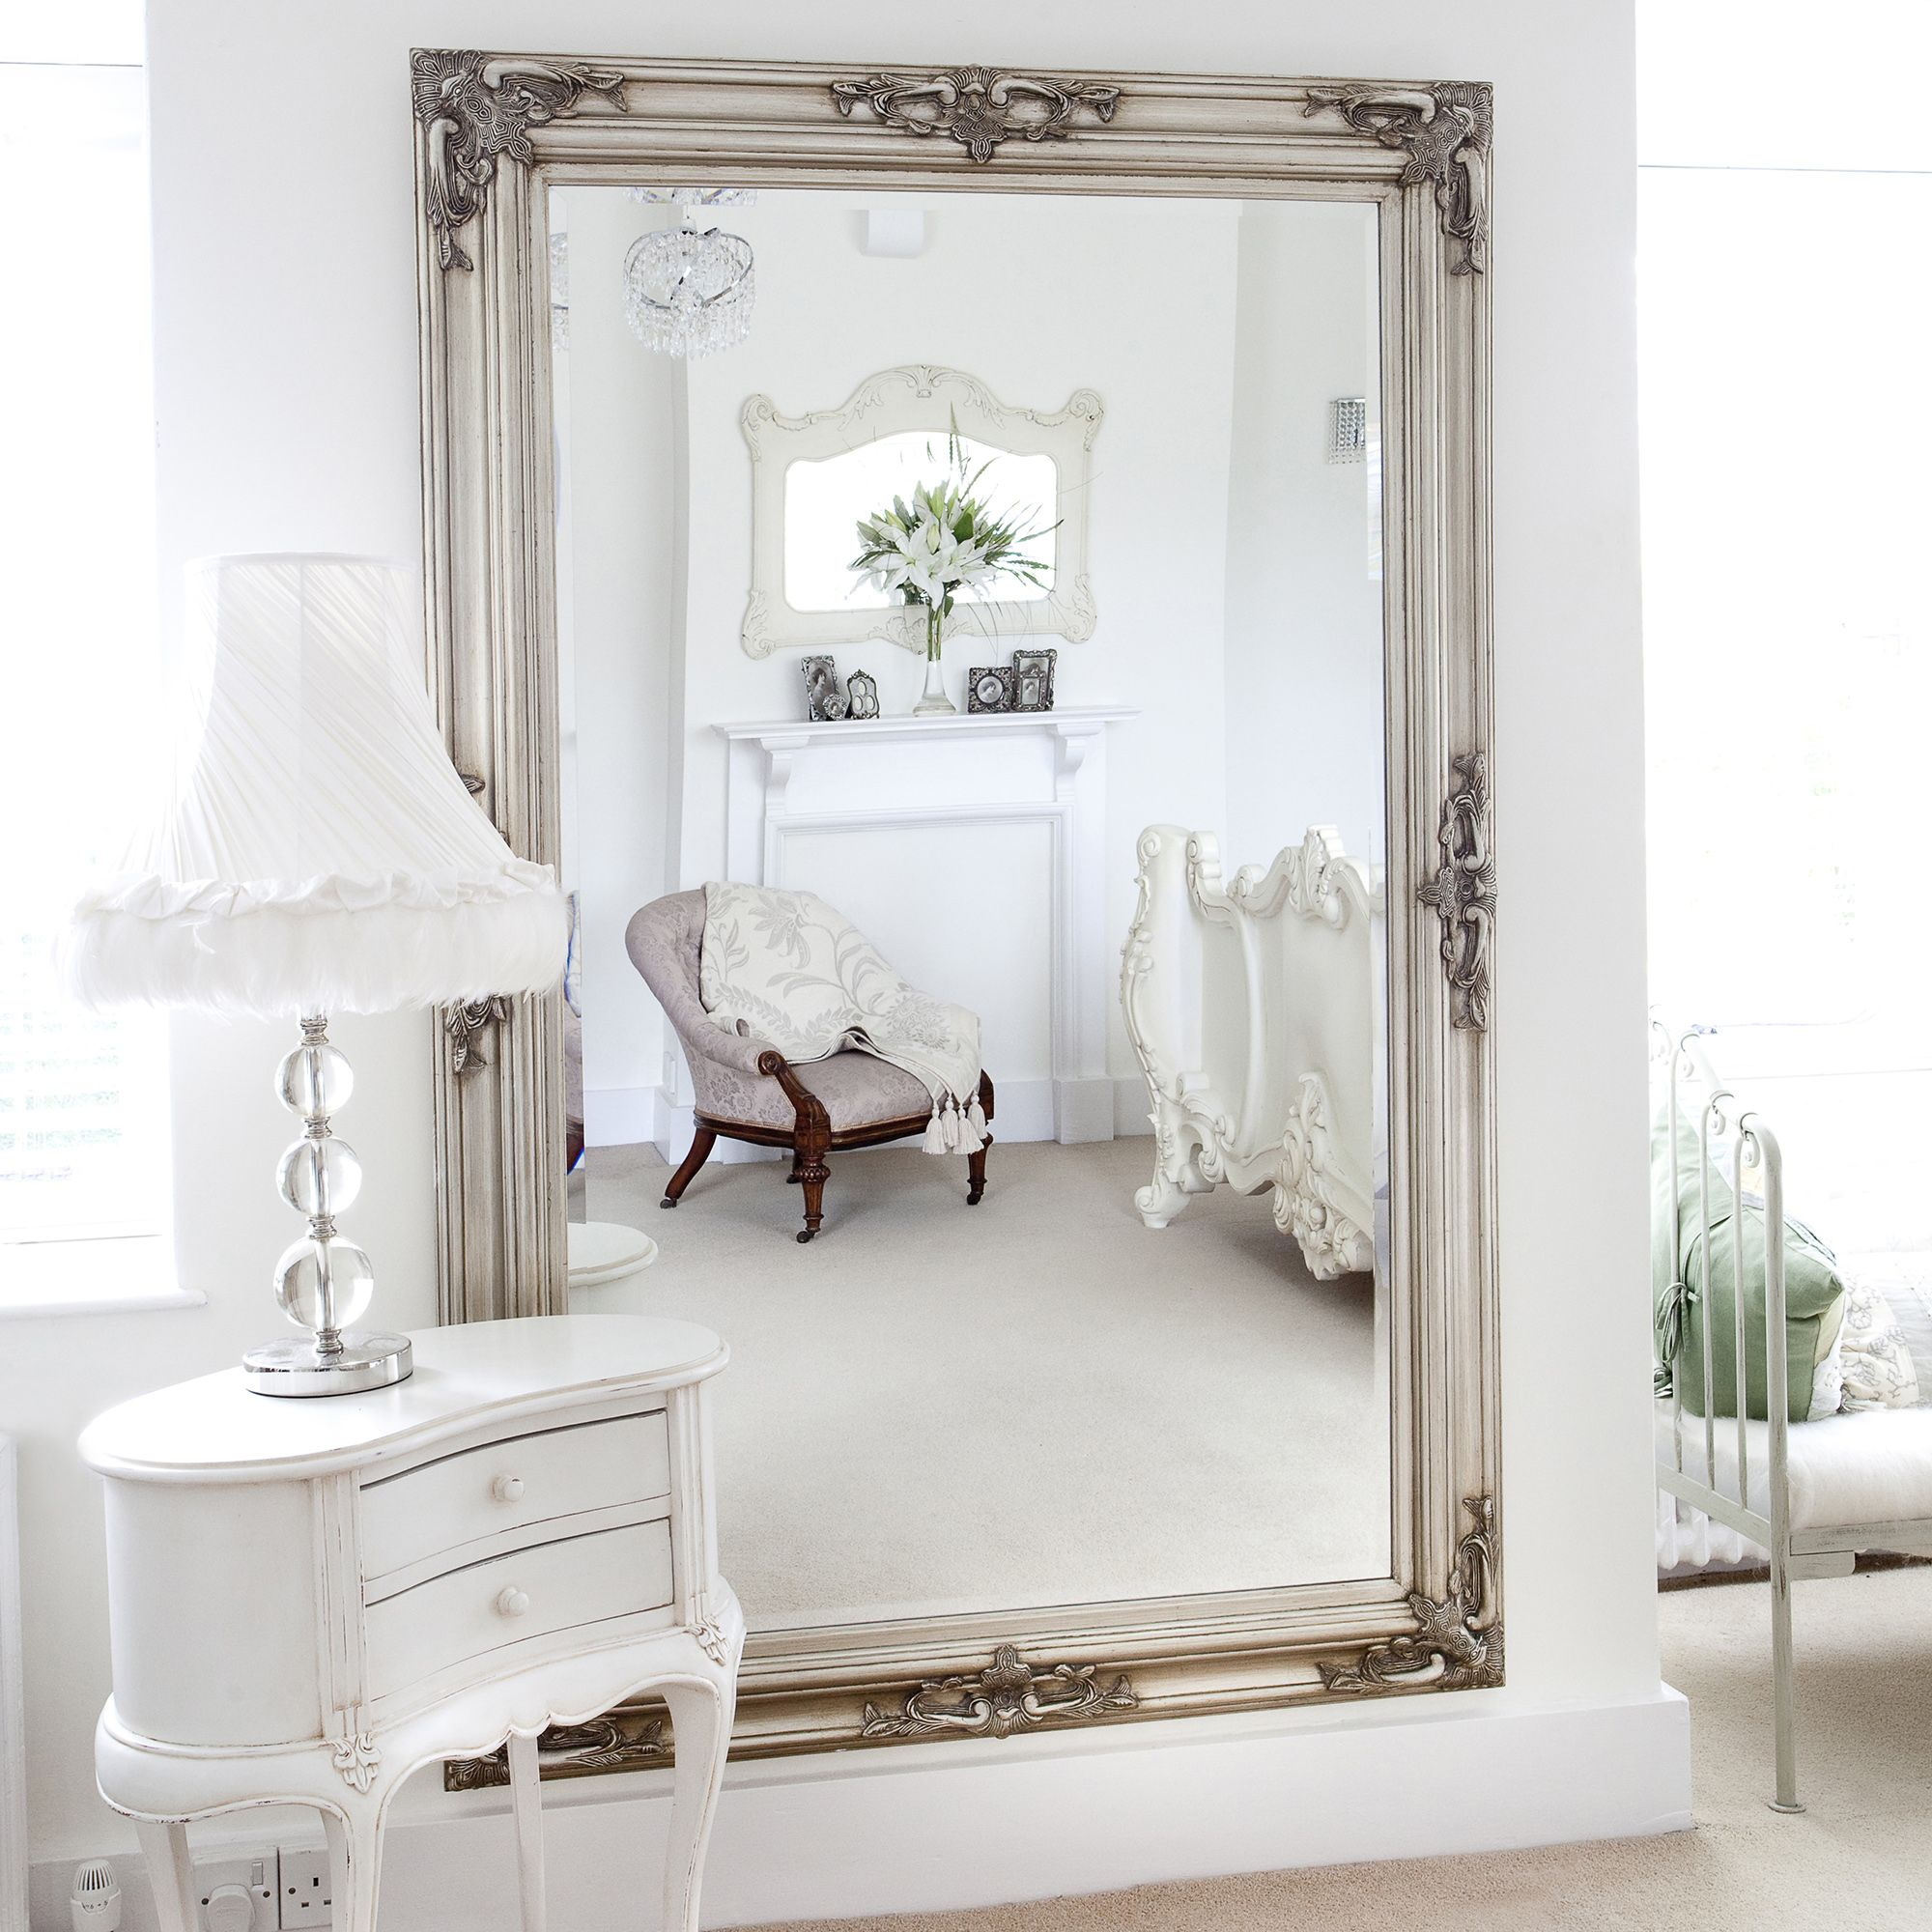 Classic ornate silver mirror interiores pinterest for Espejos decorativos dormitorio